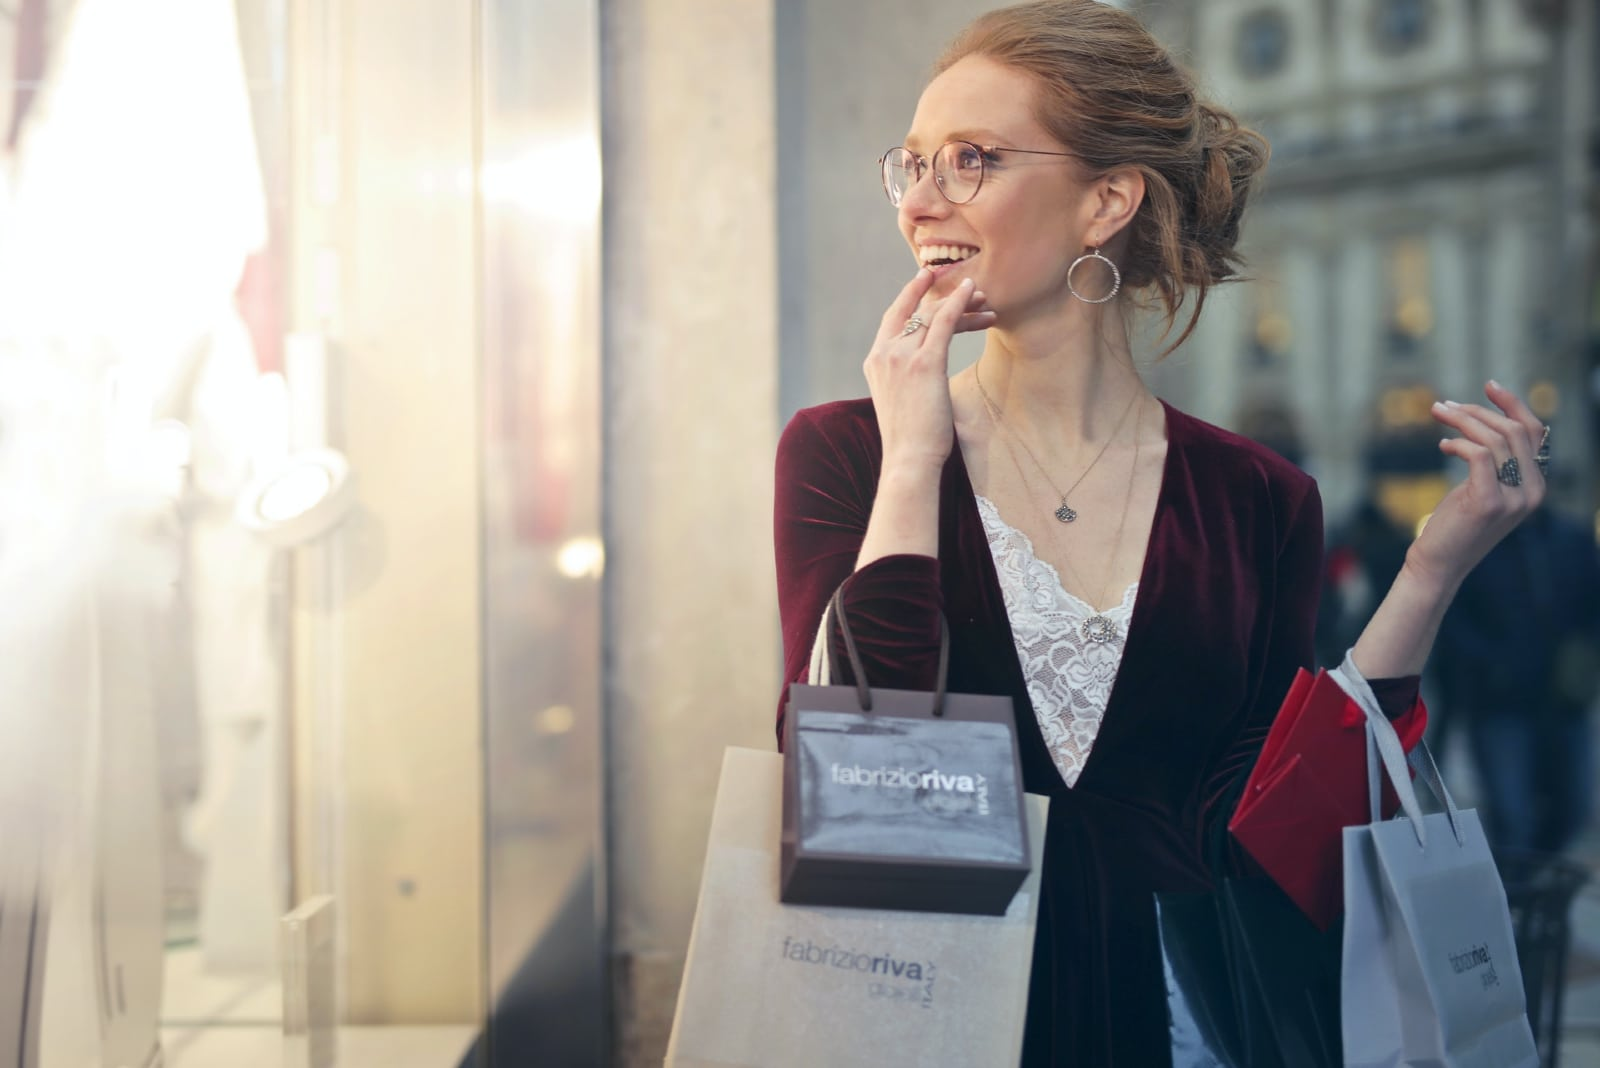 woman looking at storefront while holding shopping bags